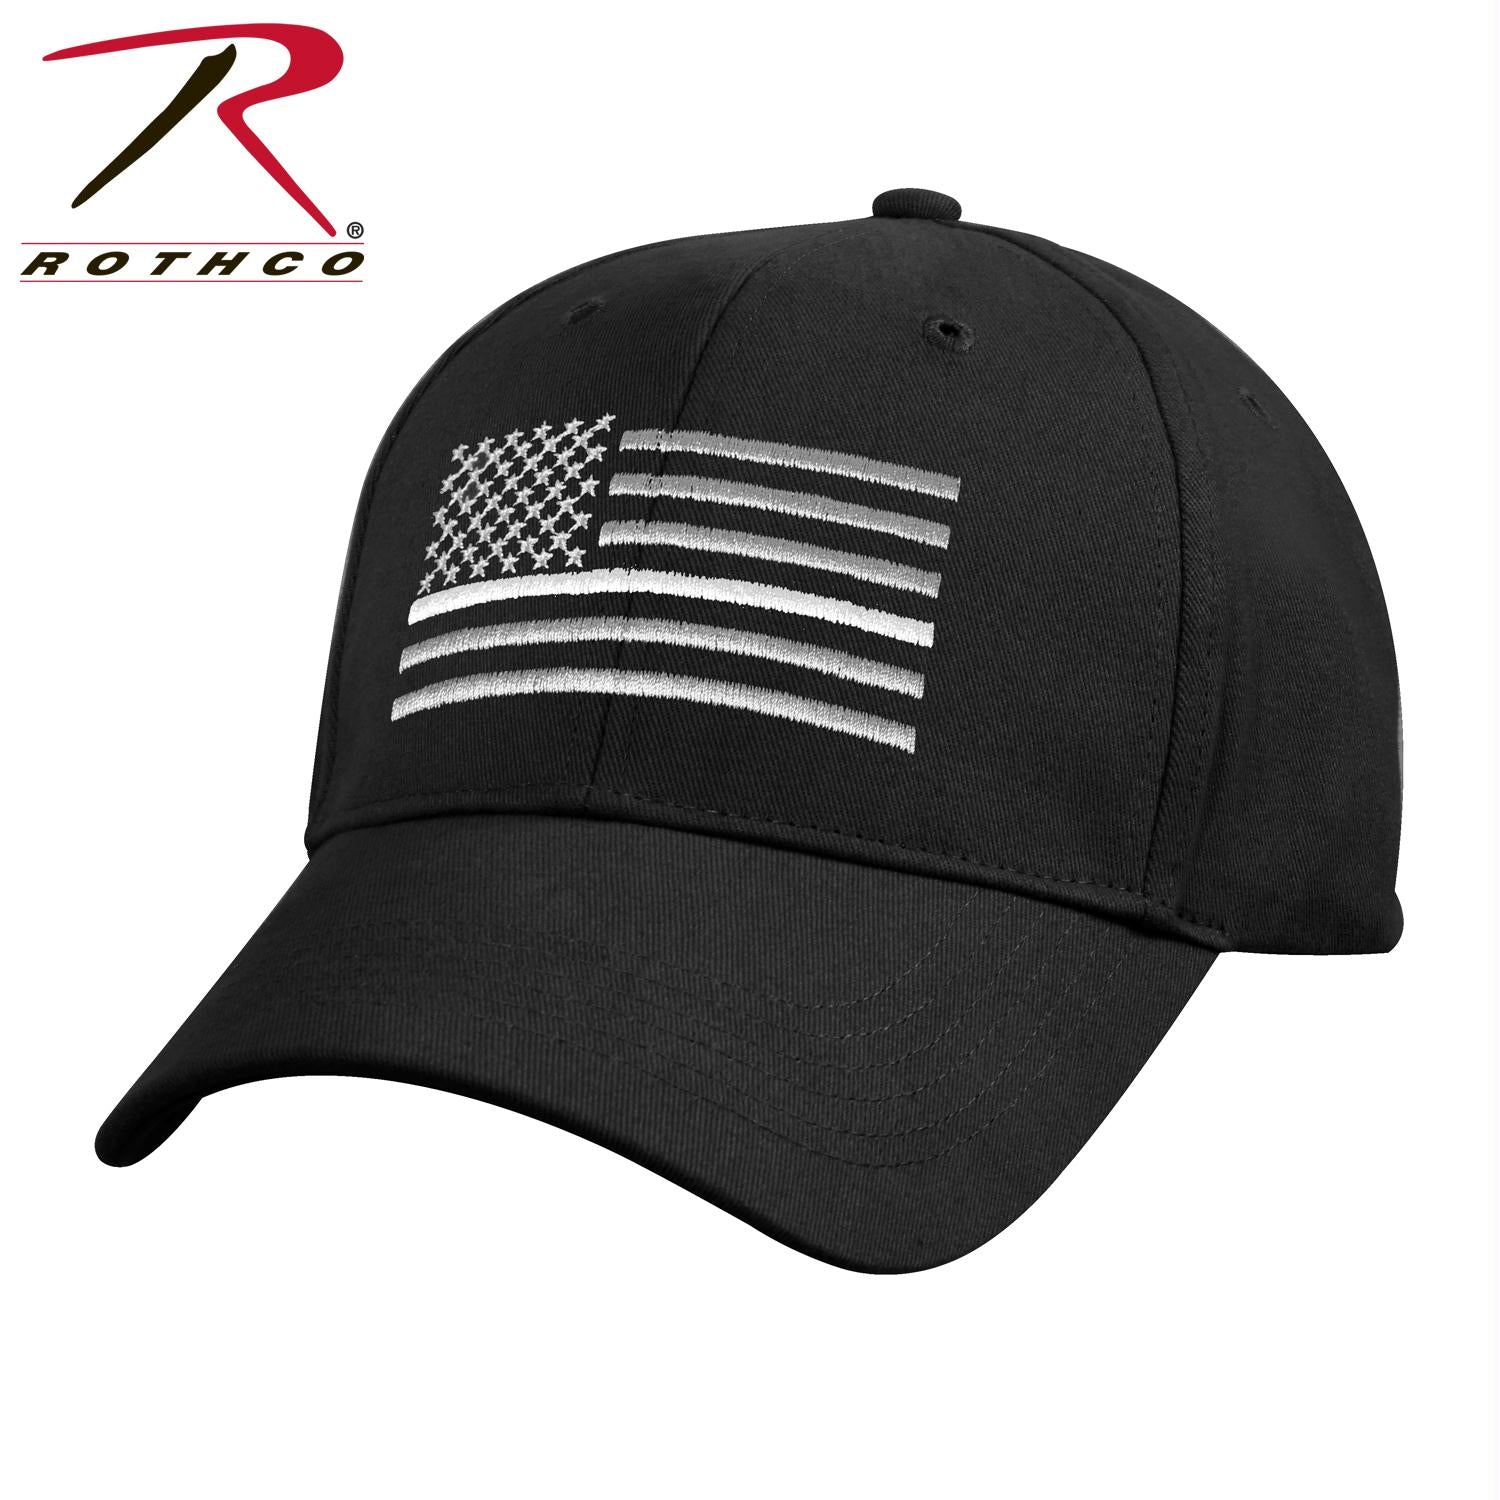 Rothco Thin White Line Flag Low Pro Cap